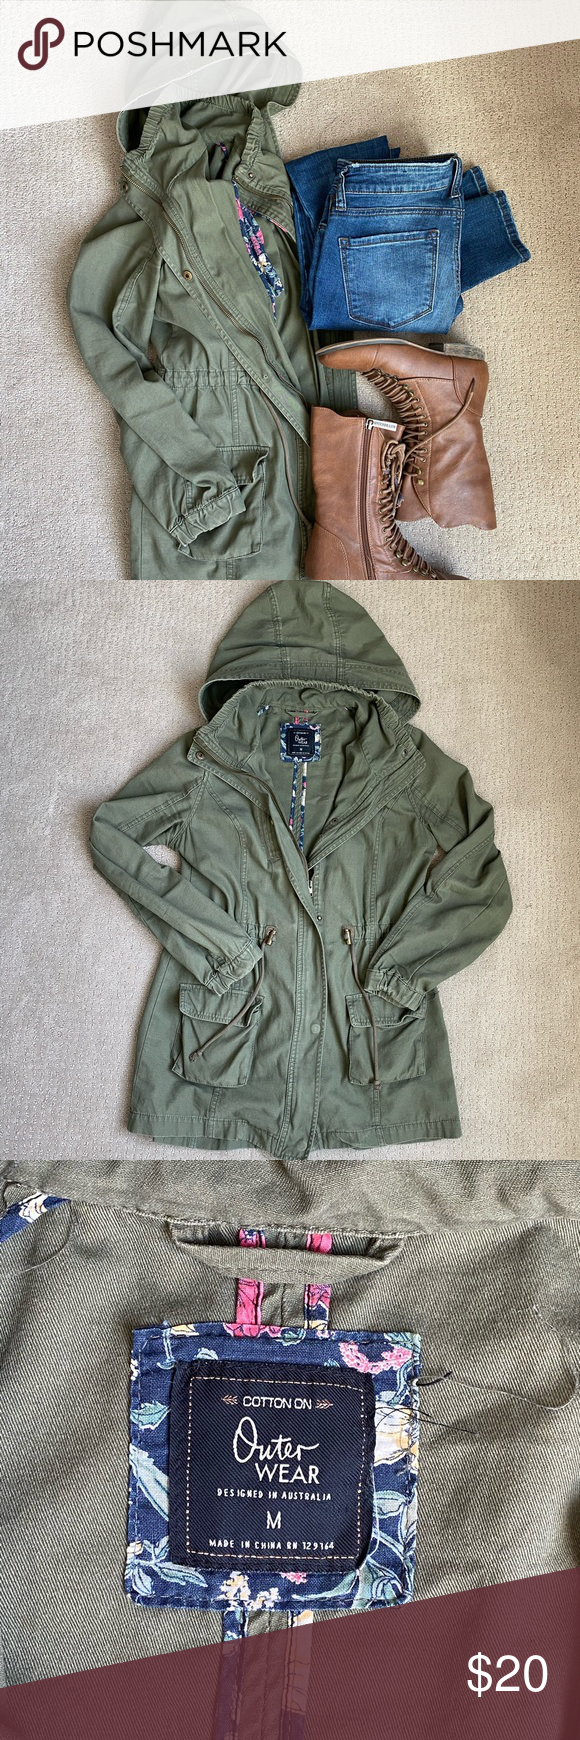 Cotton On Green Outerwear Utility Jacket Size M Well Loved Purchased From Cotton On Fits Oversized With Drawstrings T Green Outerwear Utility Jacket Jackets [ 1740 x 580 Pixel ]